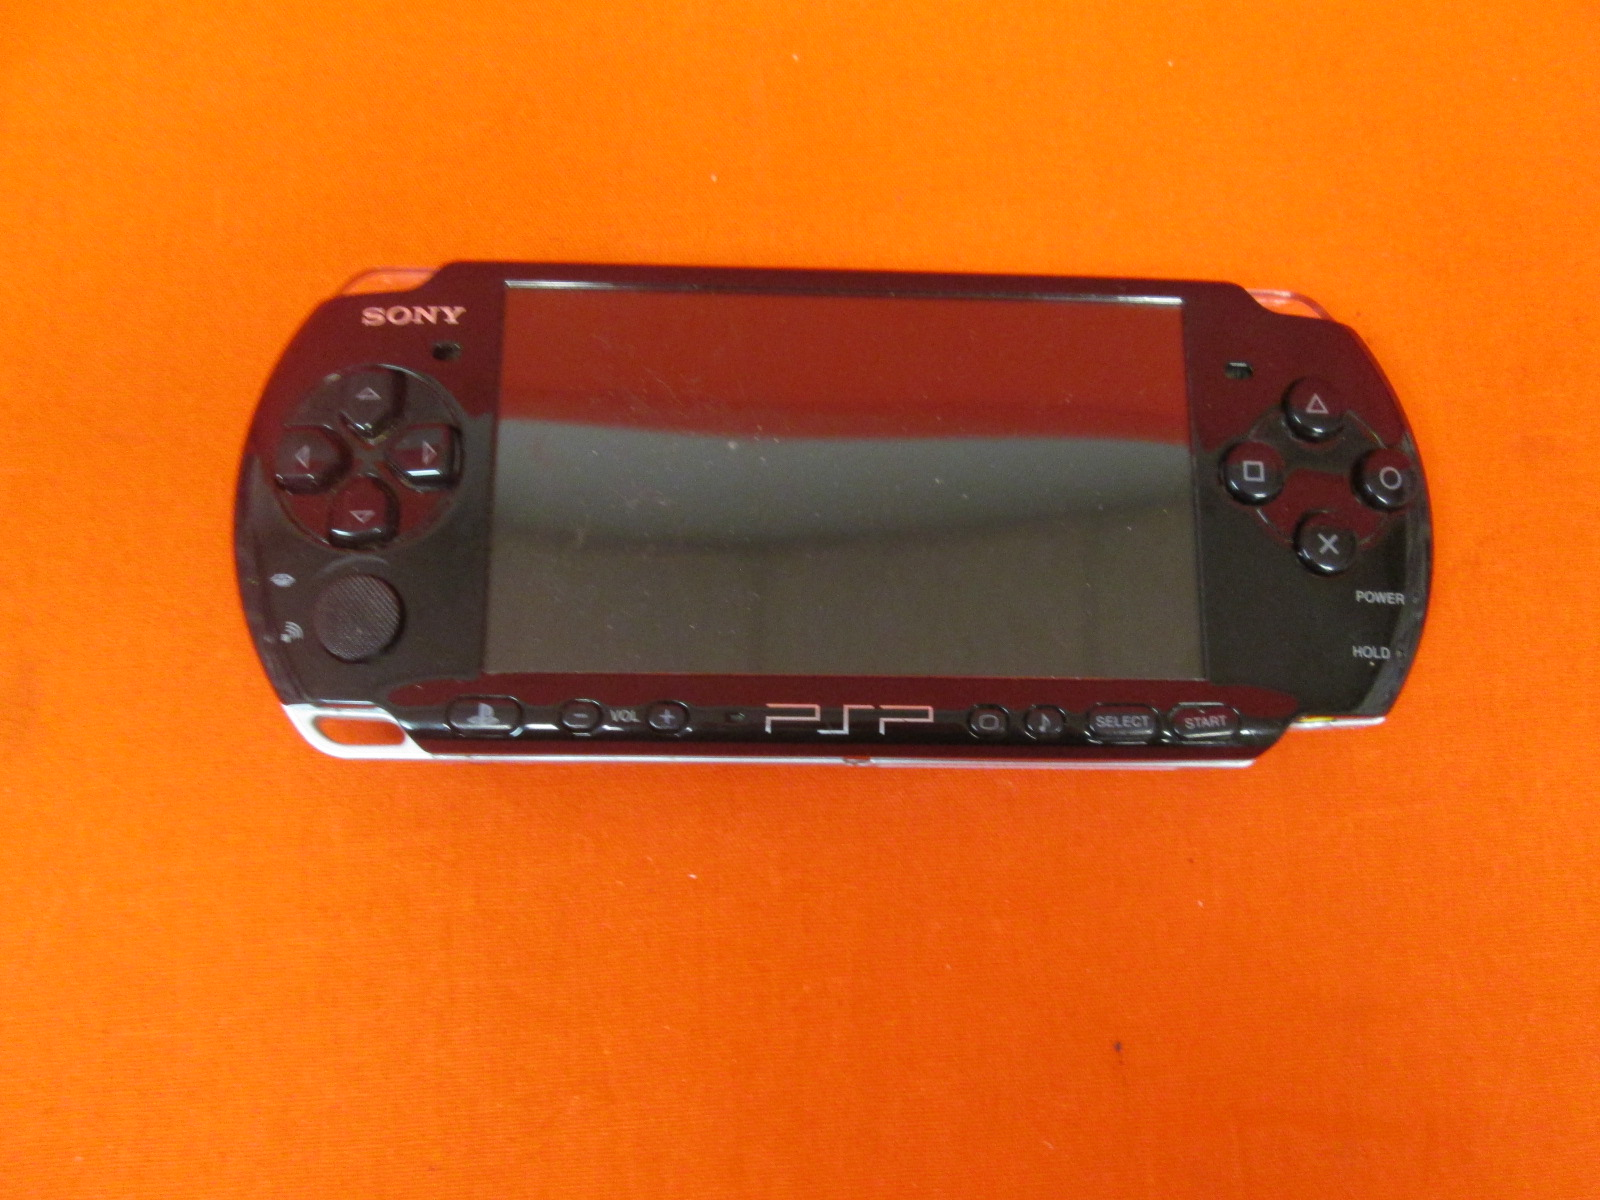 PlayStation Portable 3000 Video Game Portable System